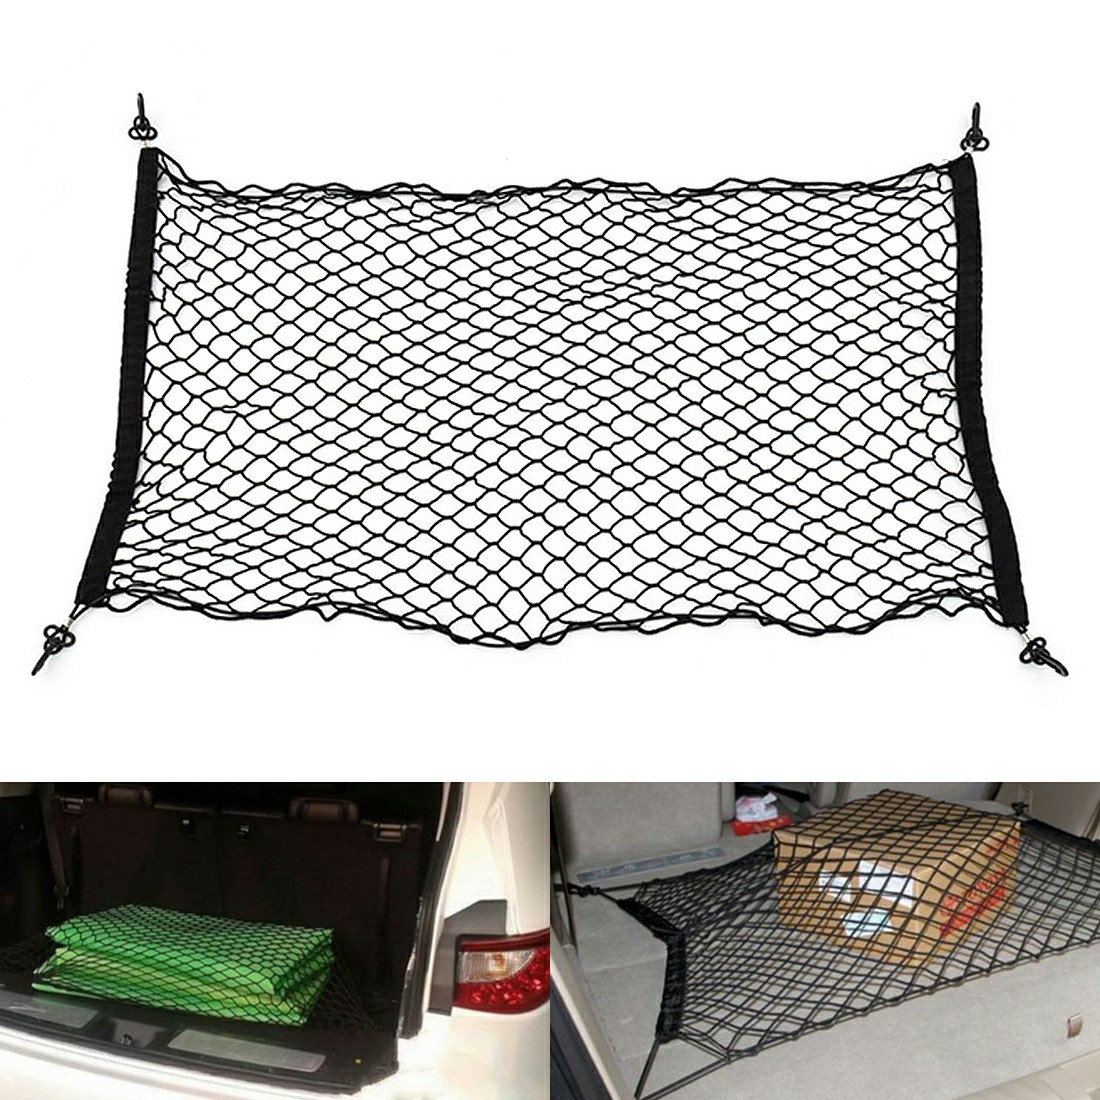 110*50cm Car Tidy Net Storage Organizer for SUV Hatchback - Black